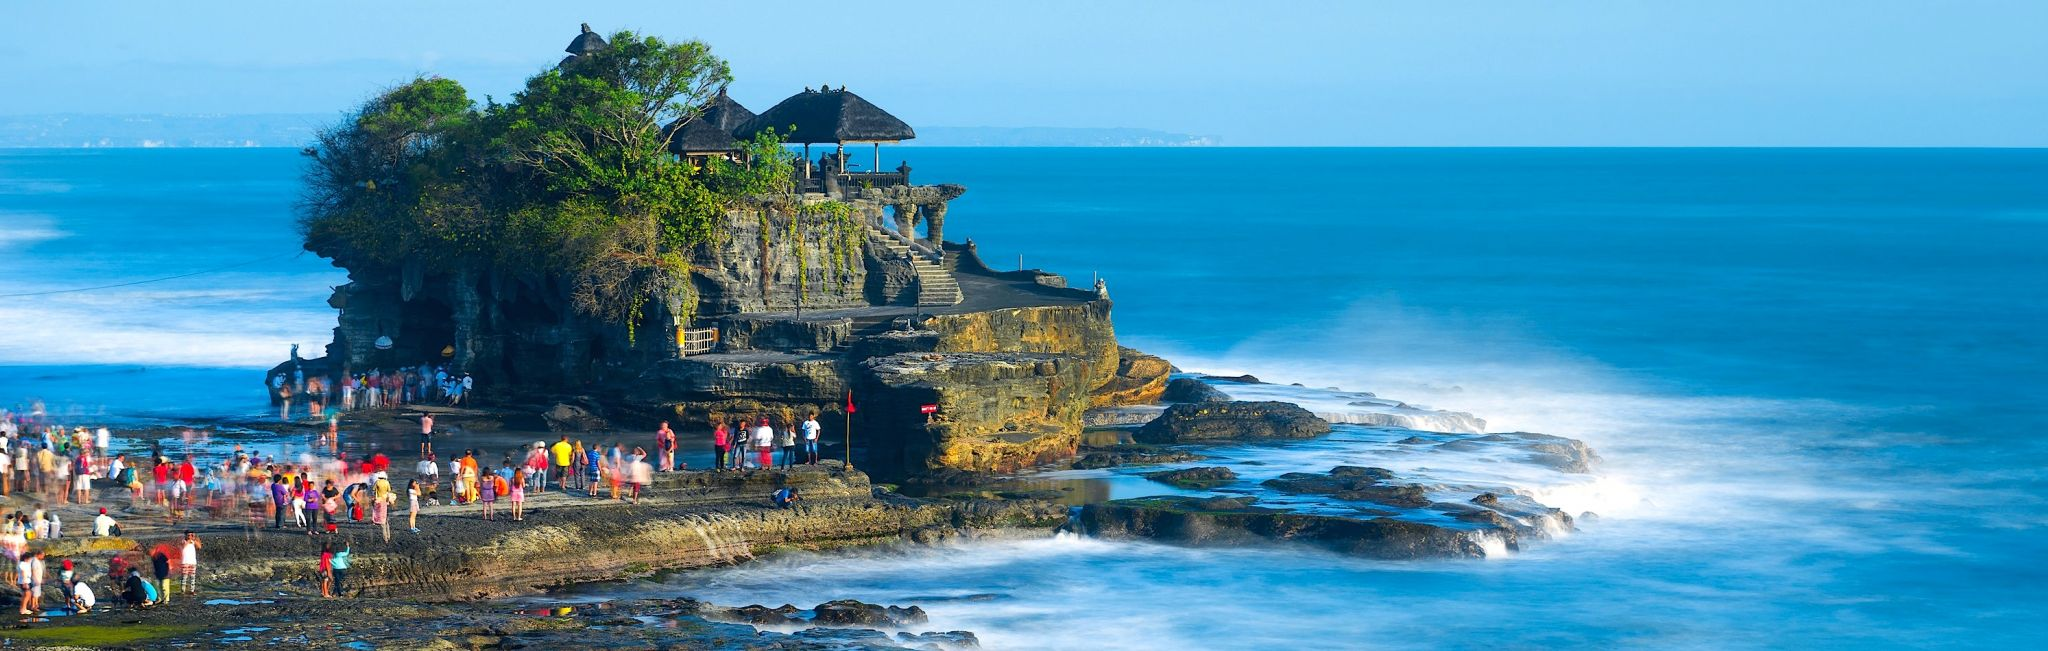 Bali Vacation Packages 2018-2019 | Bali Tours & Vacations ...